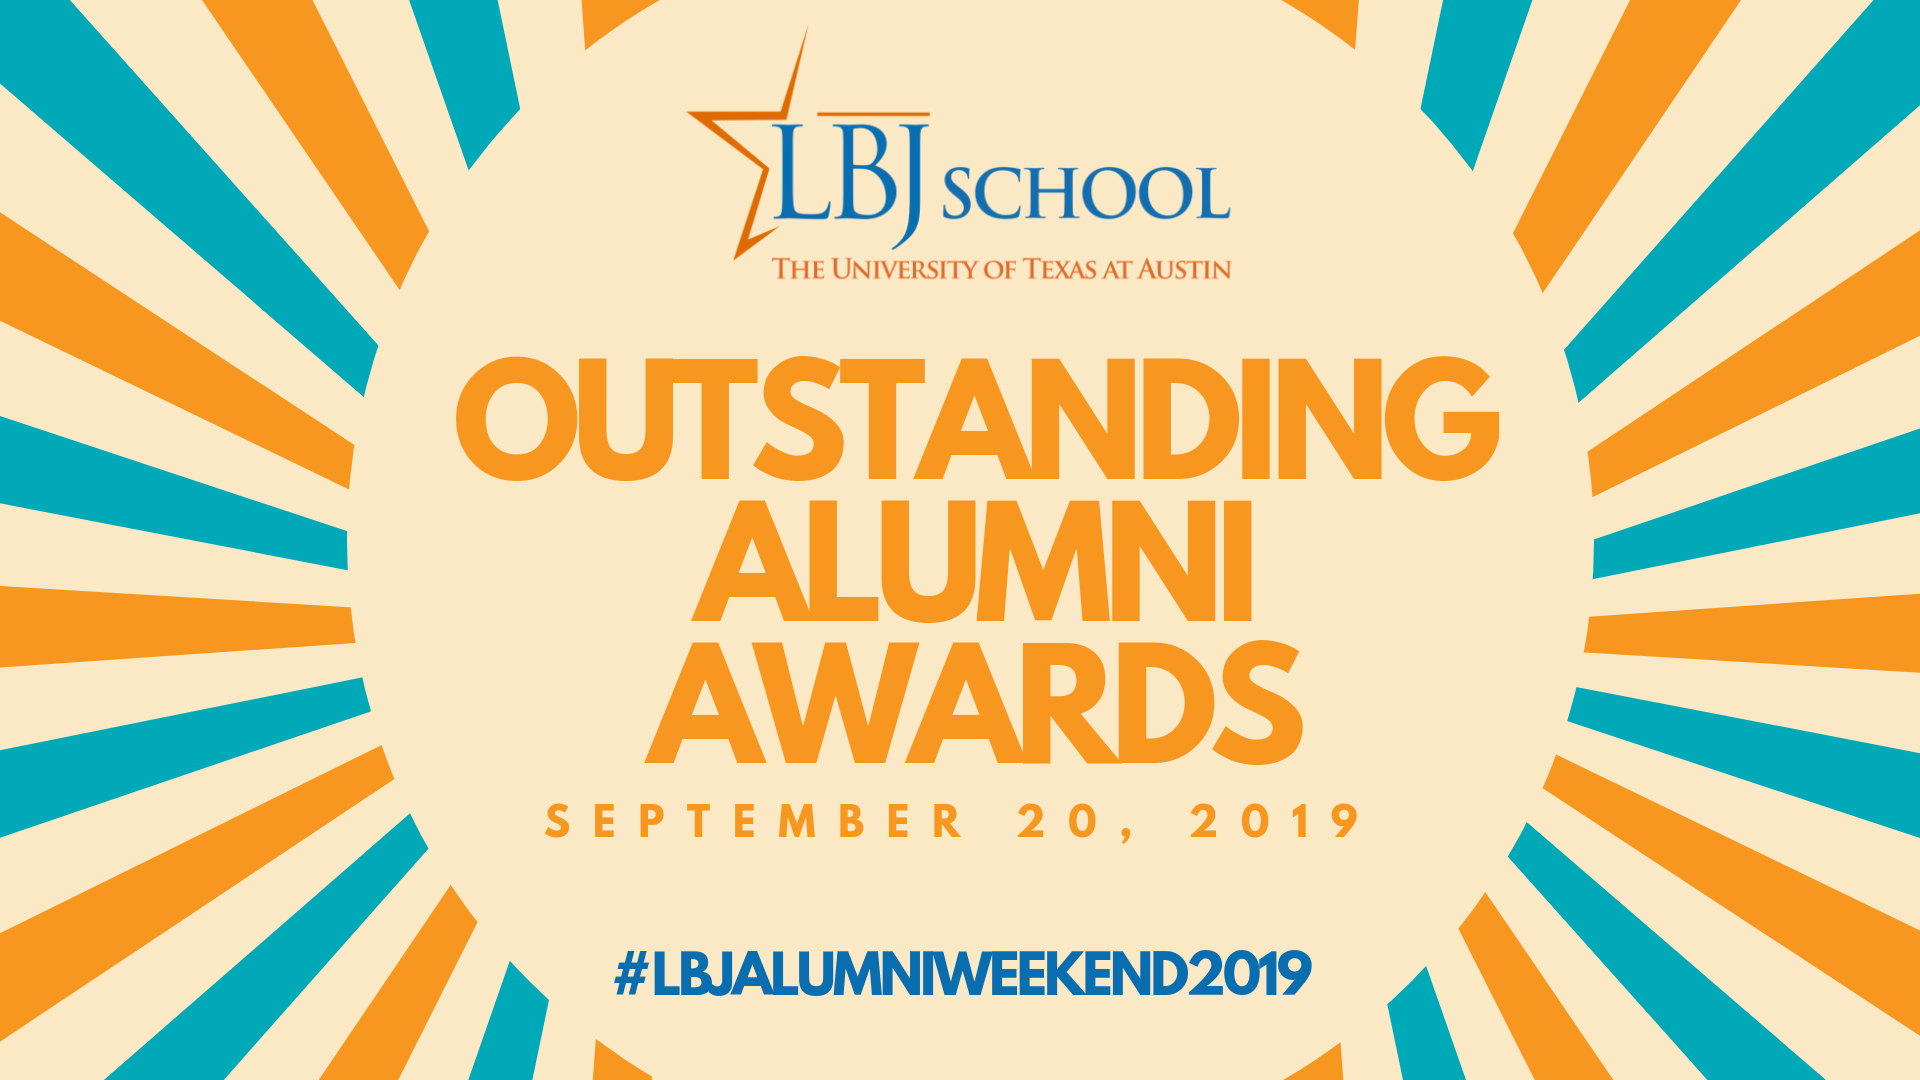 2019 LBJ Outstanding Alumni Awards